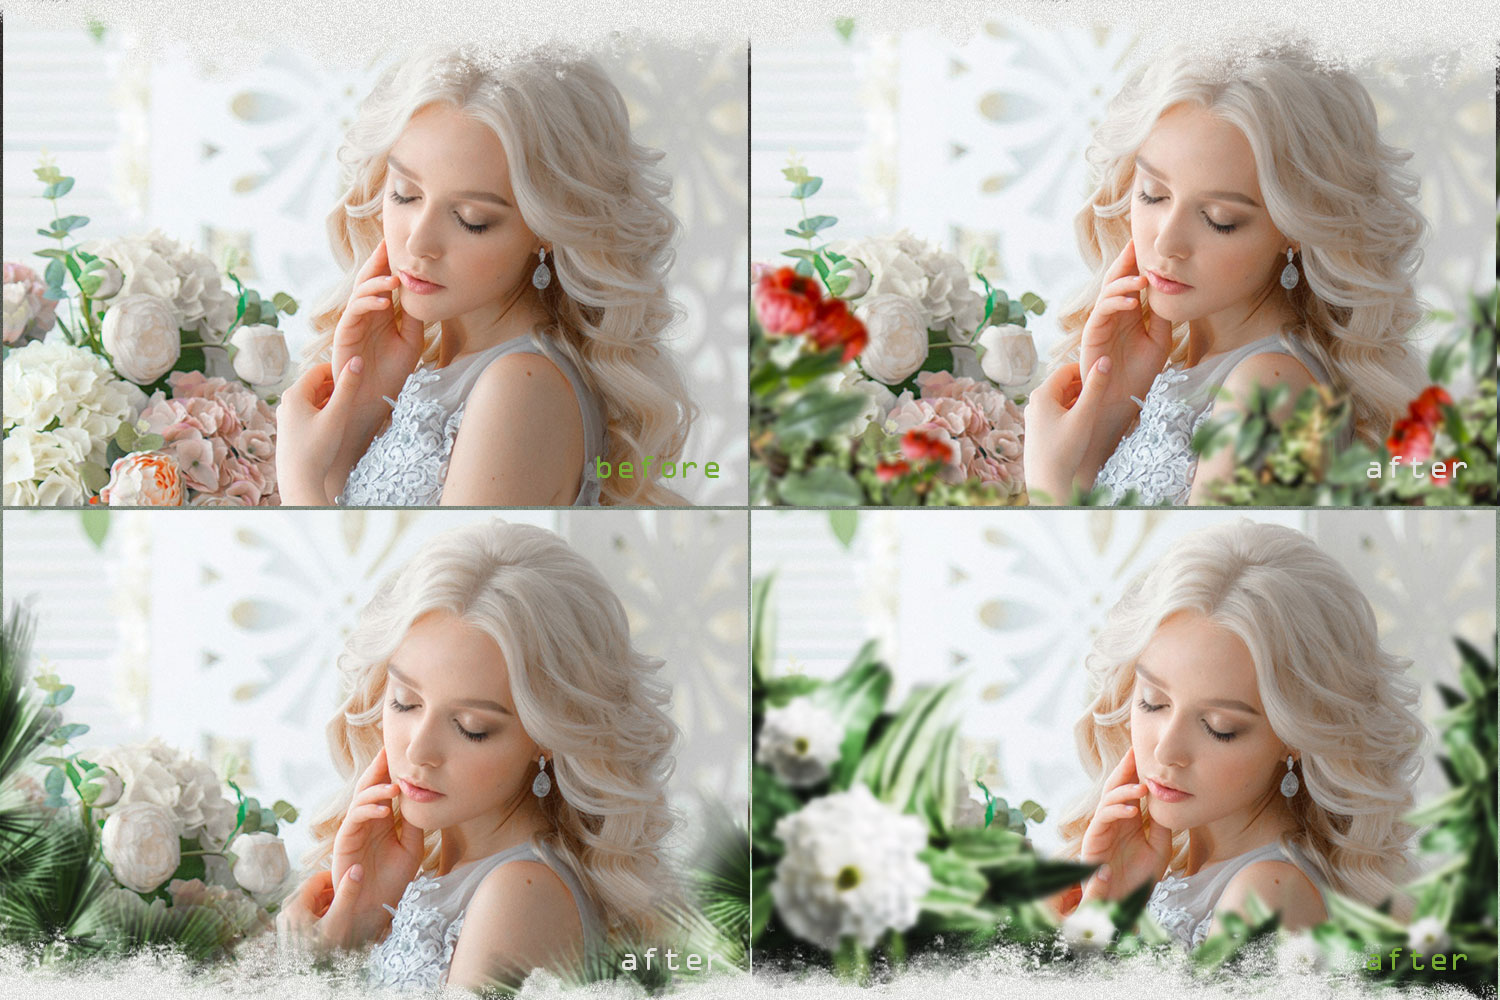 Summer overlays templates frames textures backdrop wedding example image 2